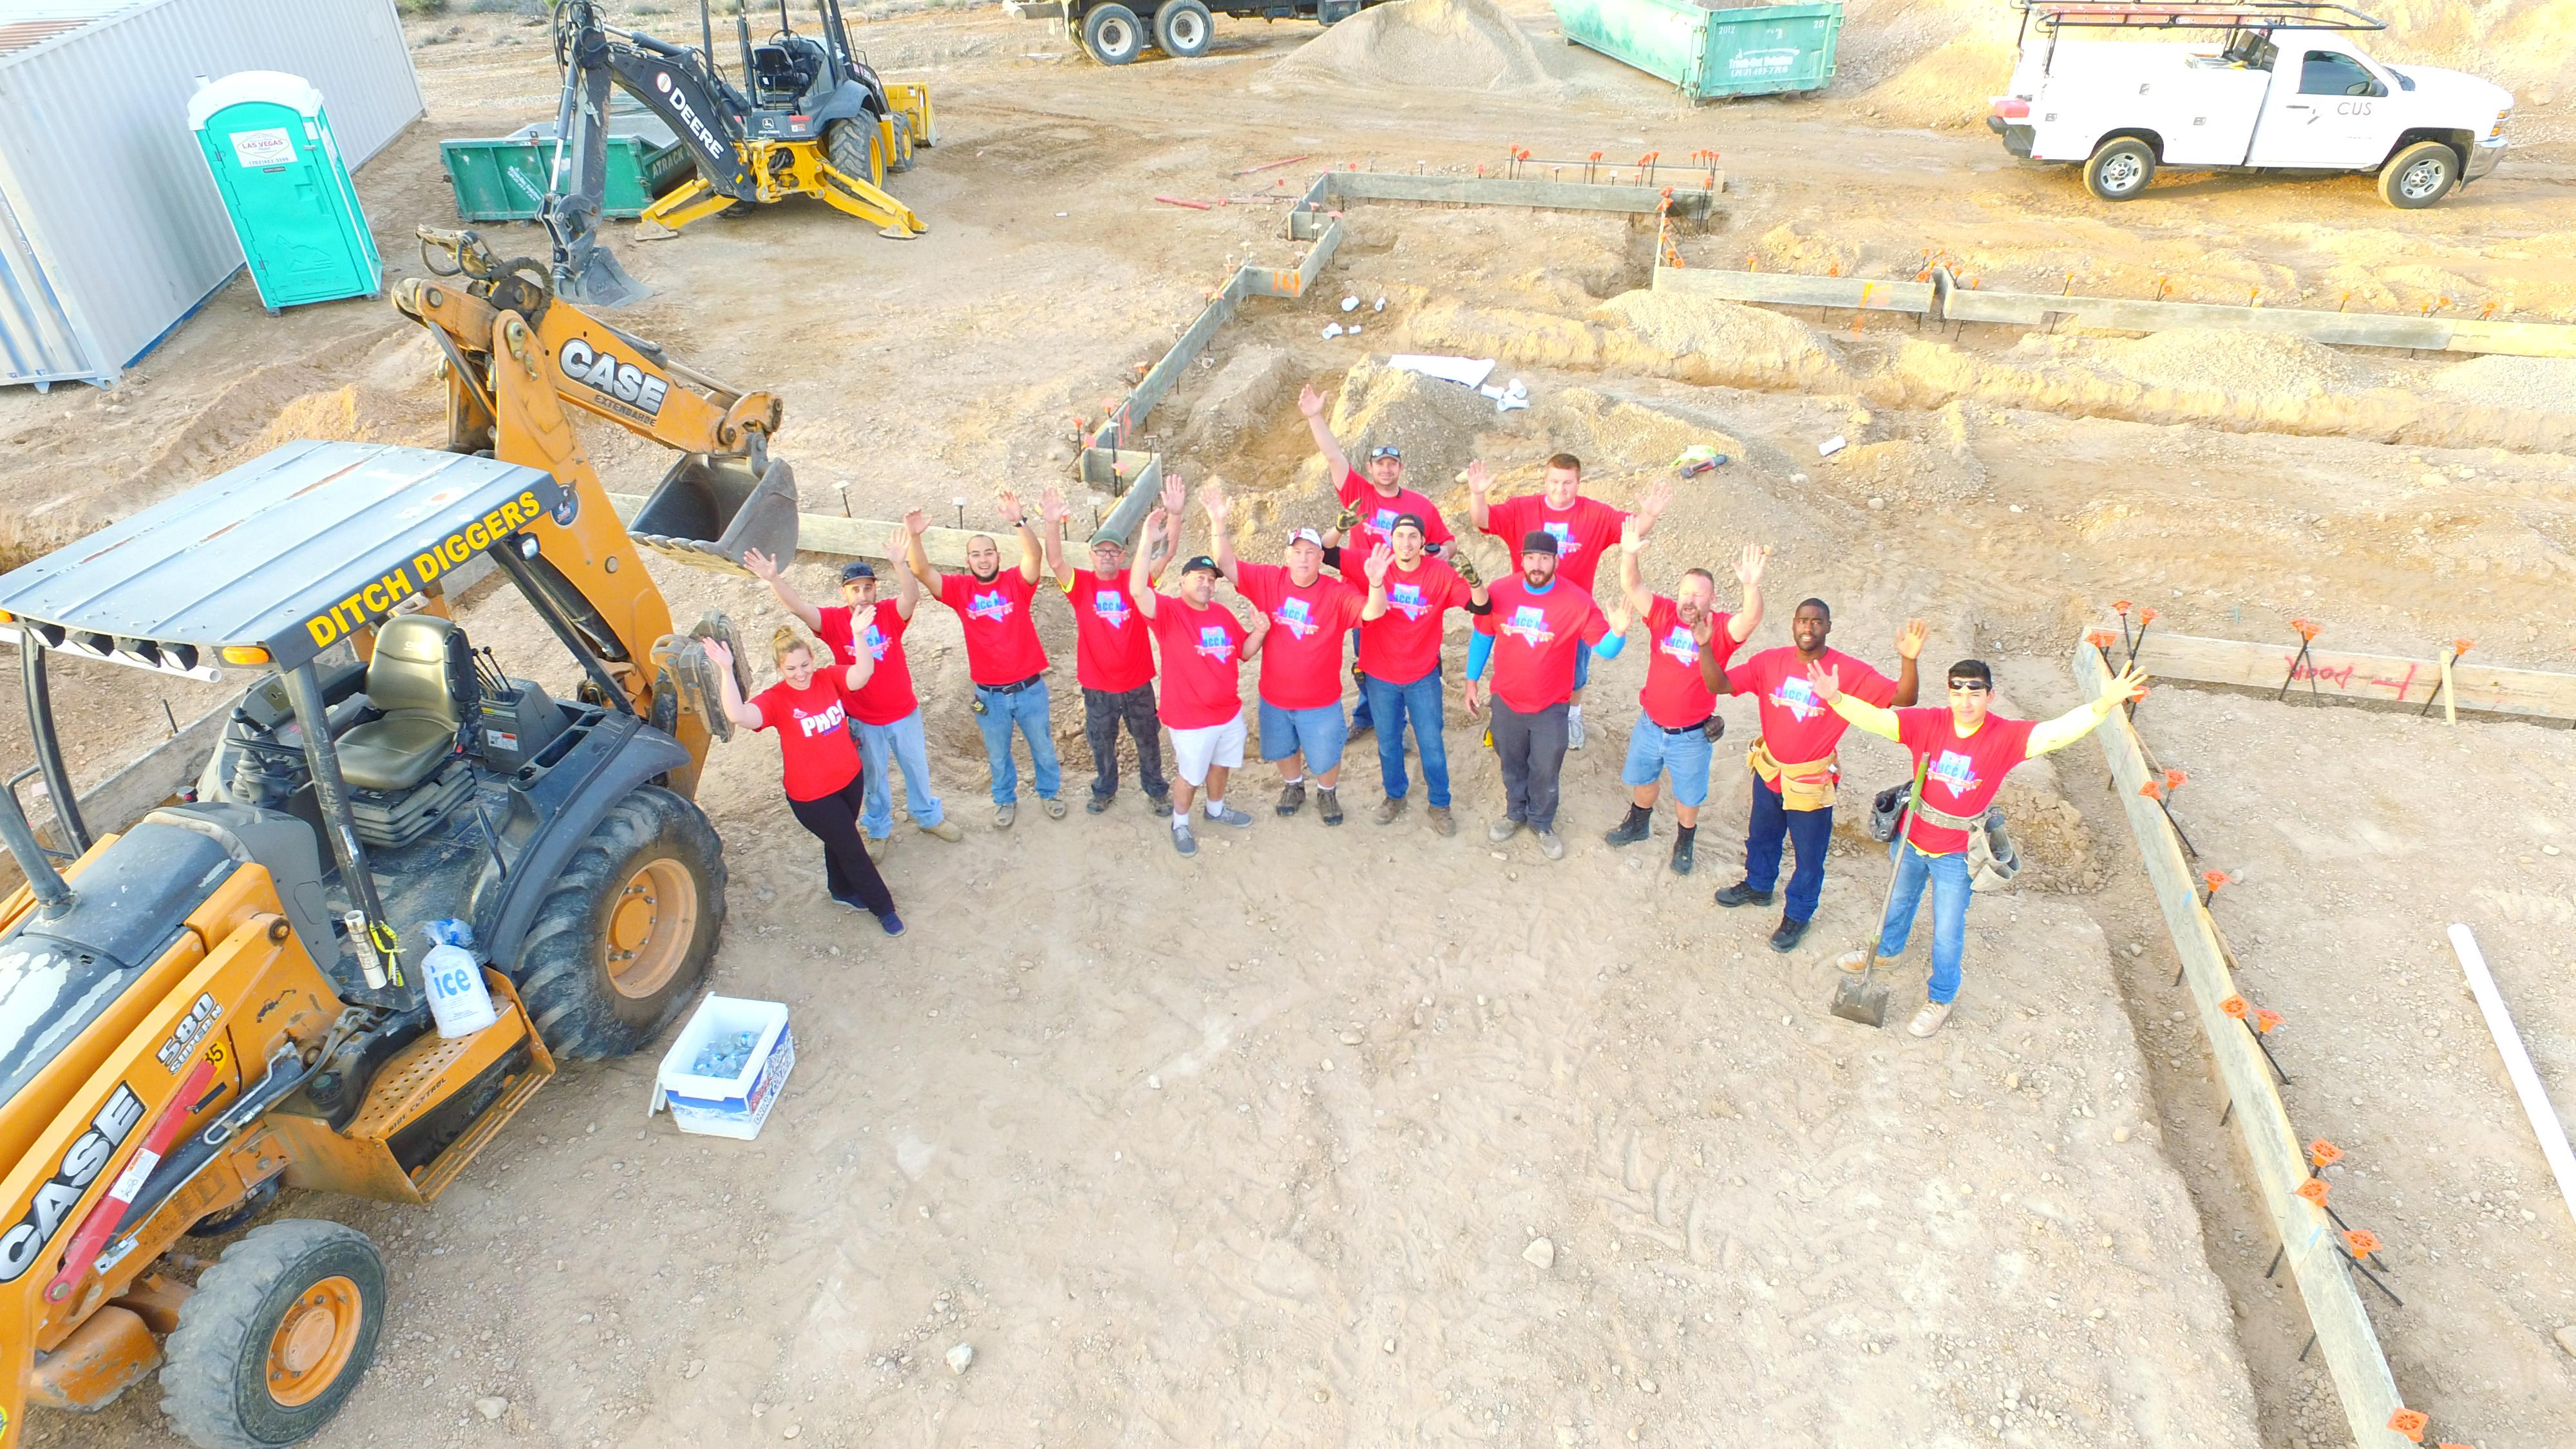 Crew on site of St. Jude's Dream Home construction 3/18/2017  Tickets for a chance to win the home available Wednesday, August 2, 2017 at DreamHome.org (or call 800-378-5386)  (Photo Courtesy Element Building Company)